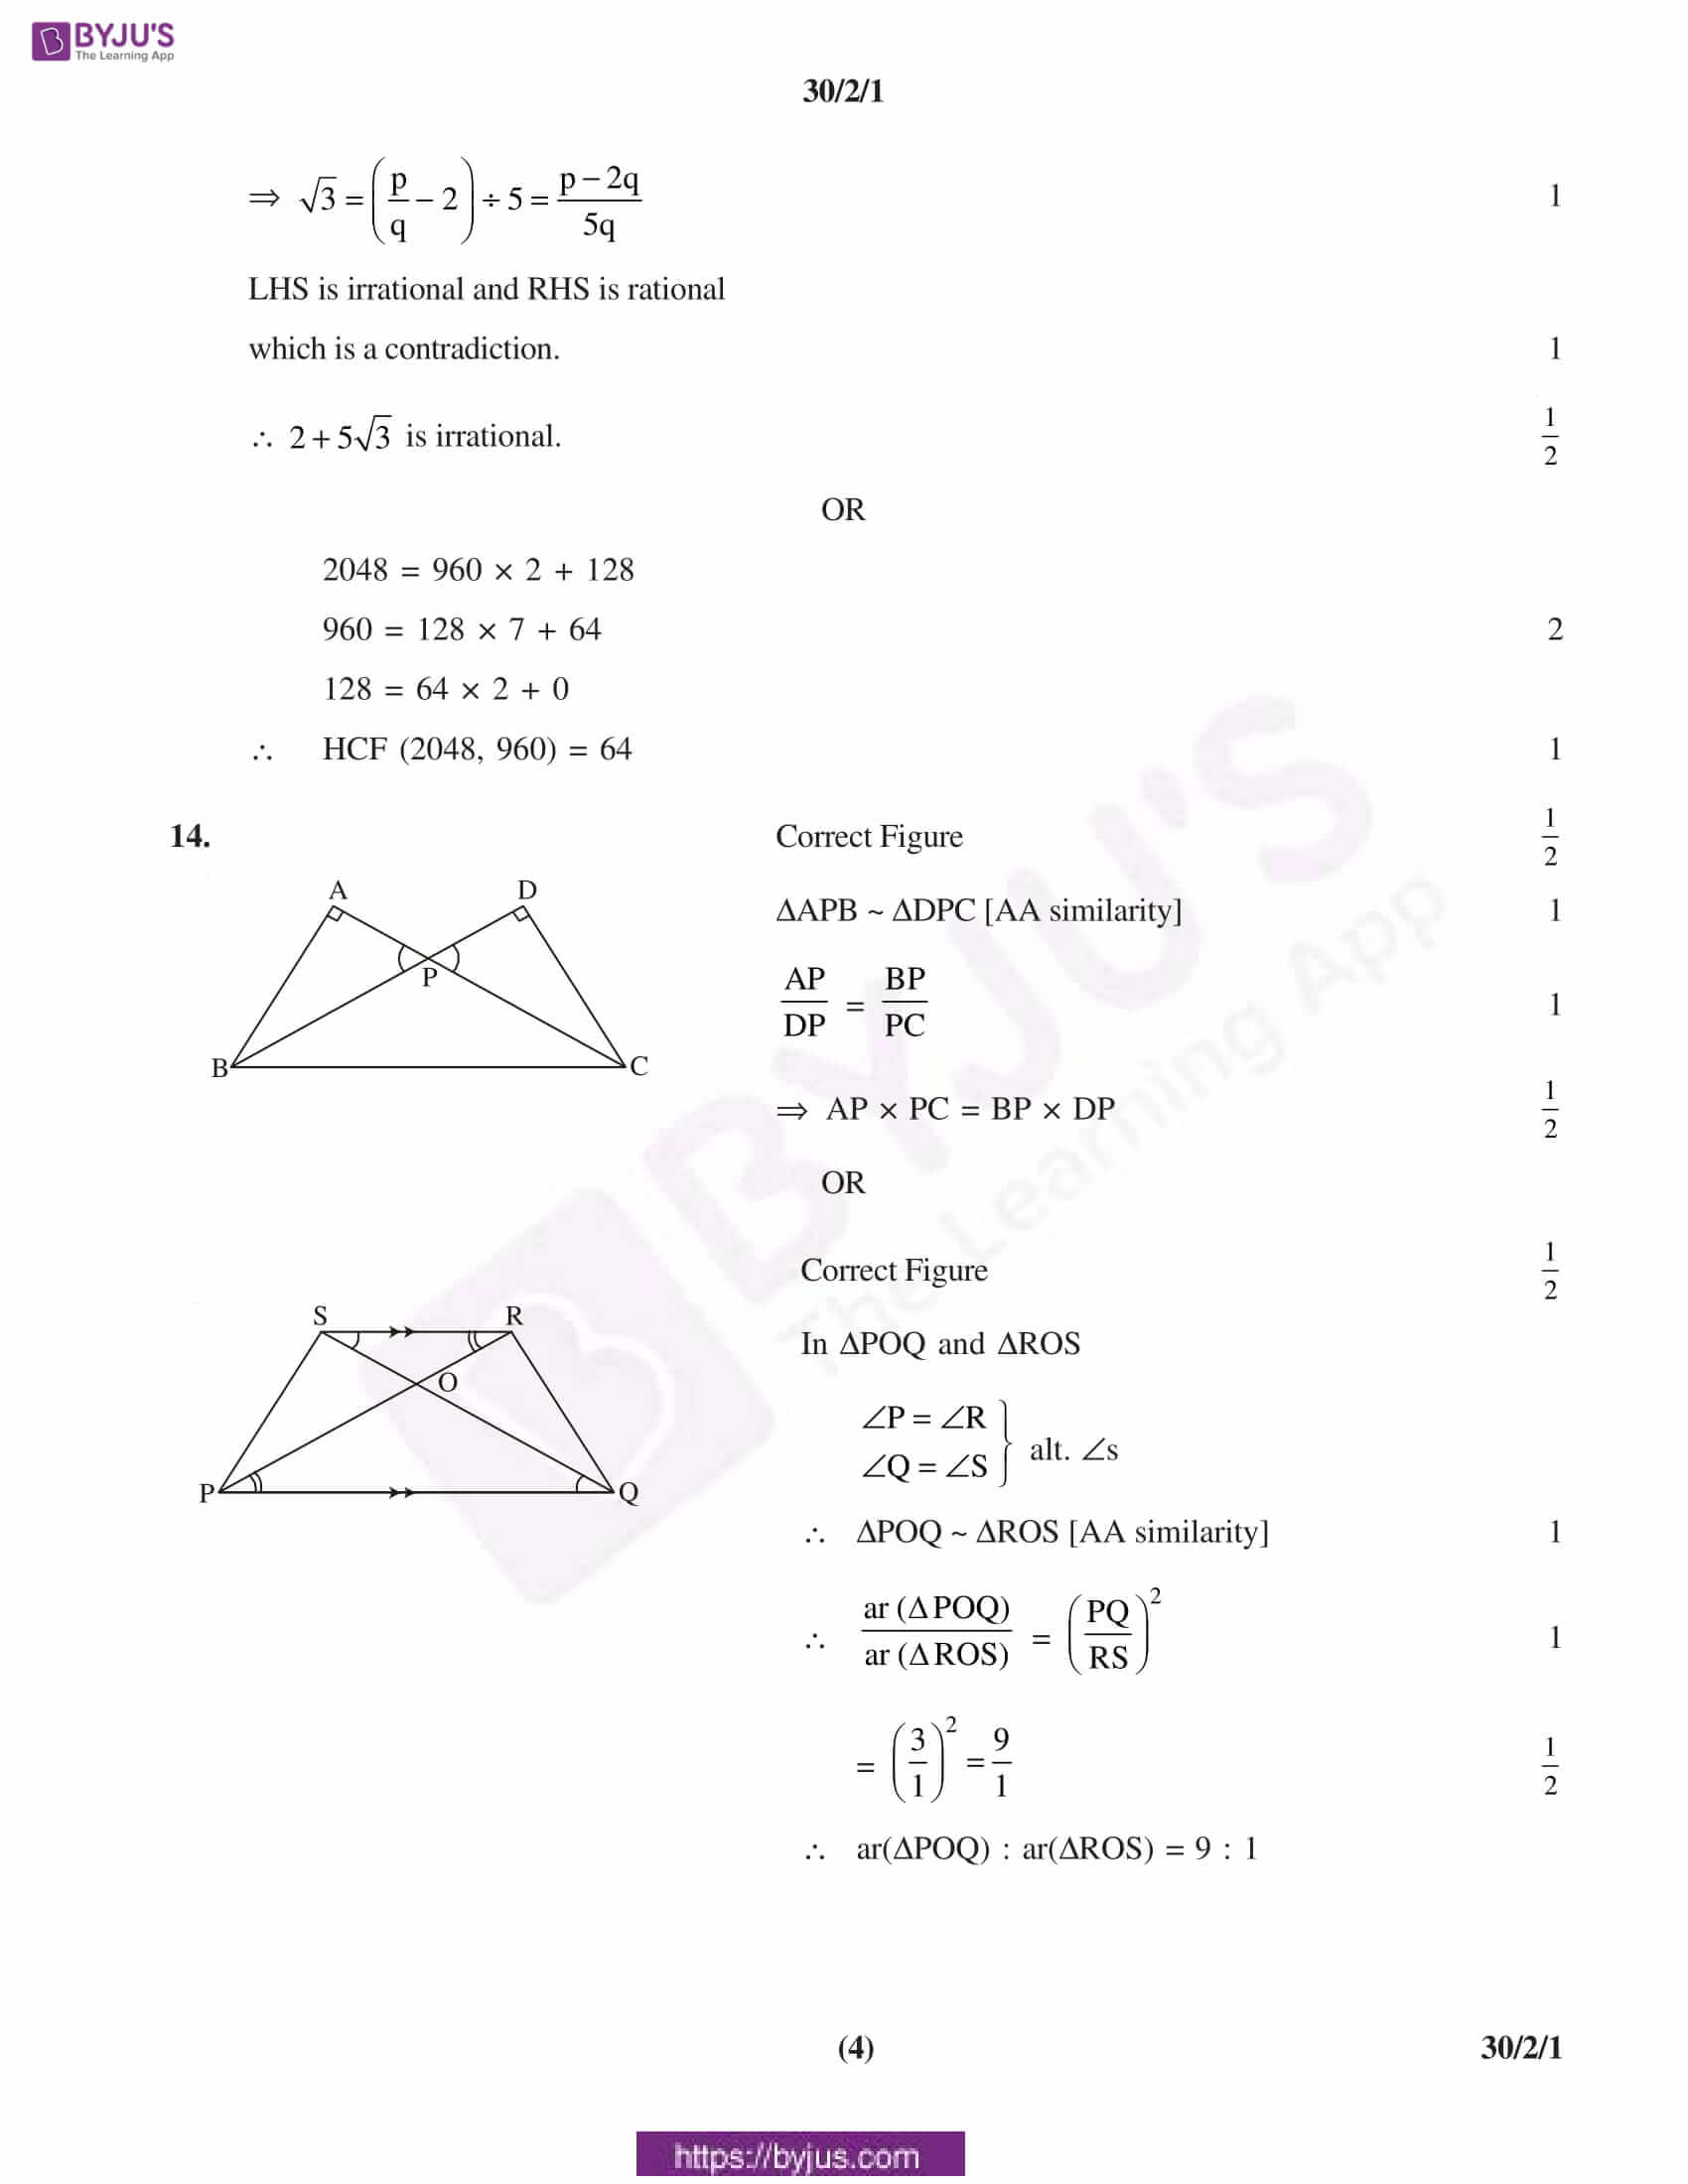 CBSE Class 10 Maths Solution PDF 2019 Set 2 04